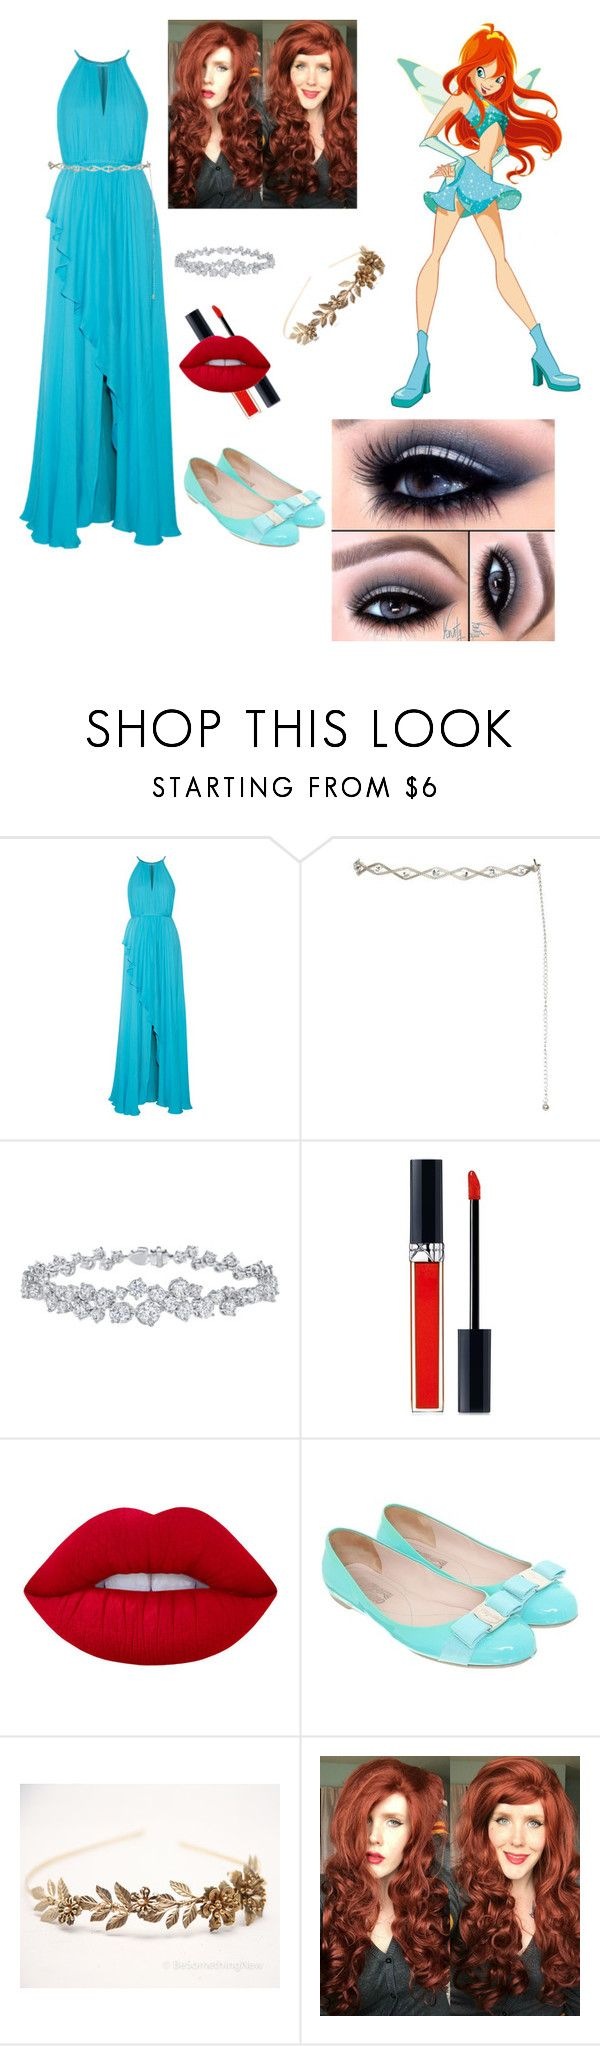 """""""Bloom ( Winx Club ) costume💙"""" by thepolyjuicepotion ❤ liked on Polyvore featuring Badgley Mischka, Harry Winston, Christian Dior, Lime Crime and Salvatore Ferragamo"""